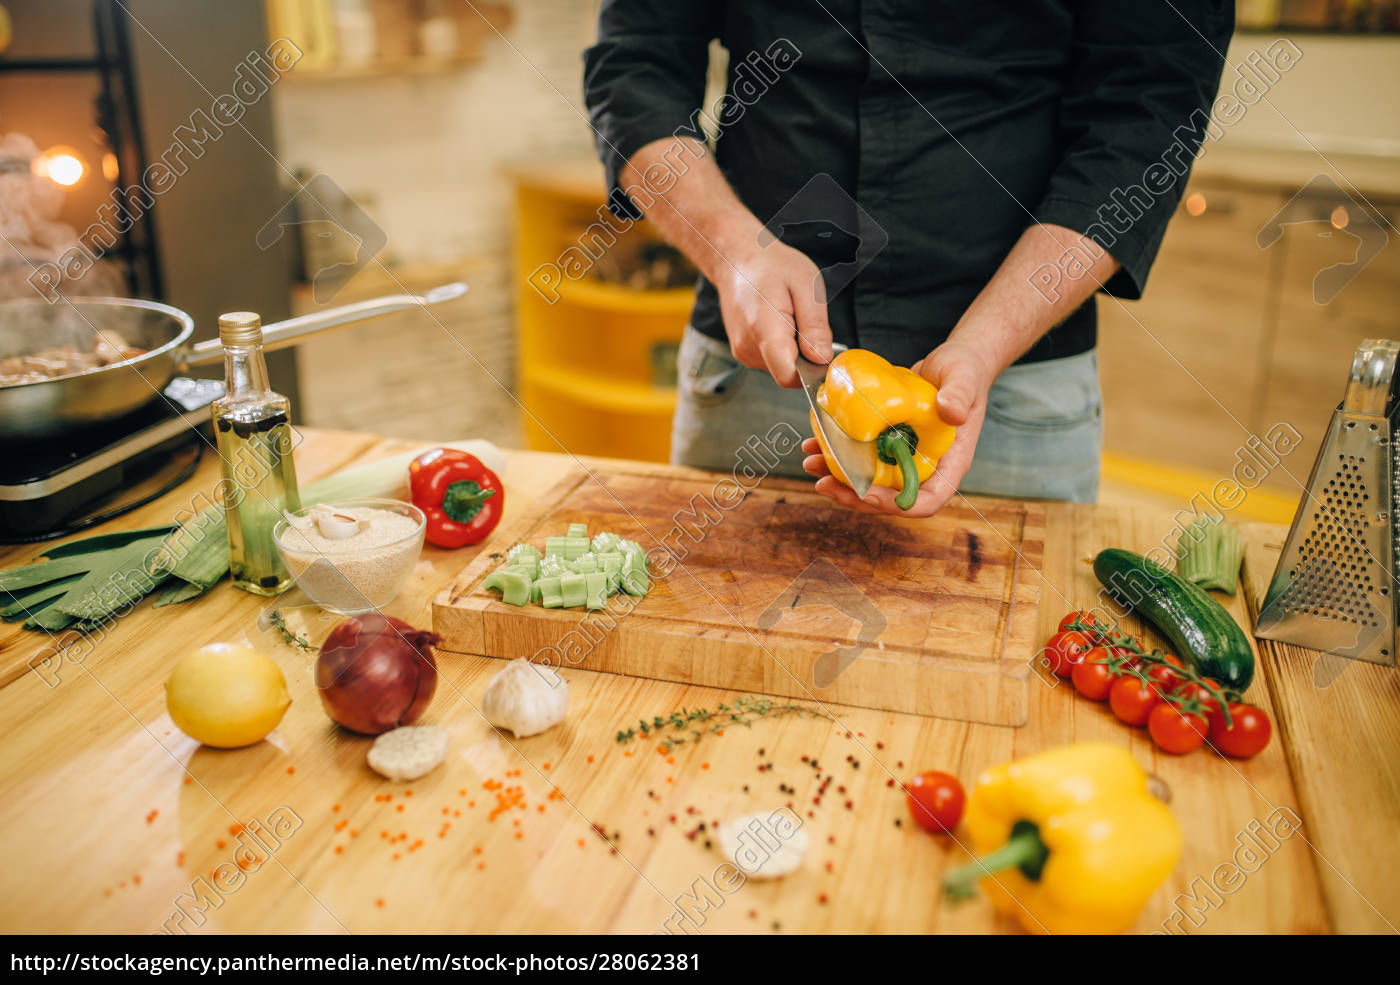 chef, with, knife, cuts, yellow, pepper - 28062381